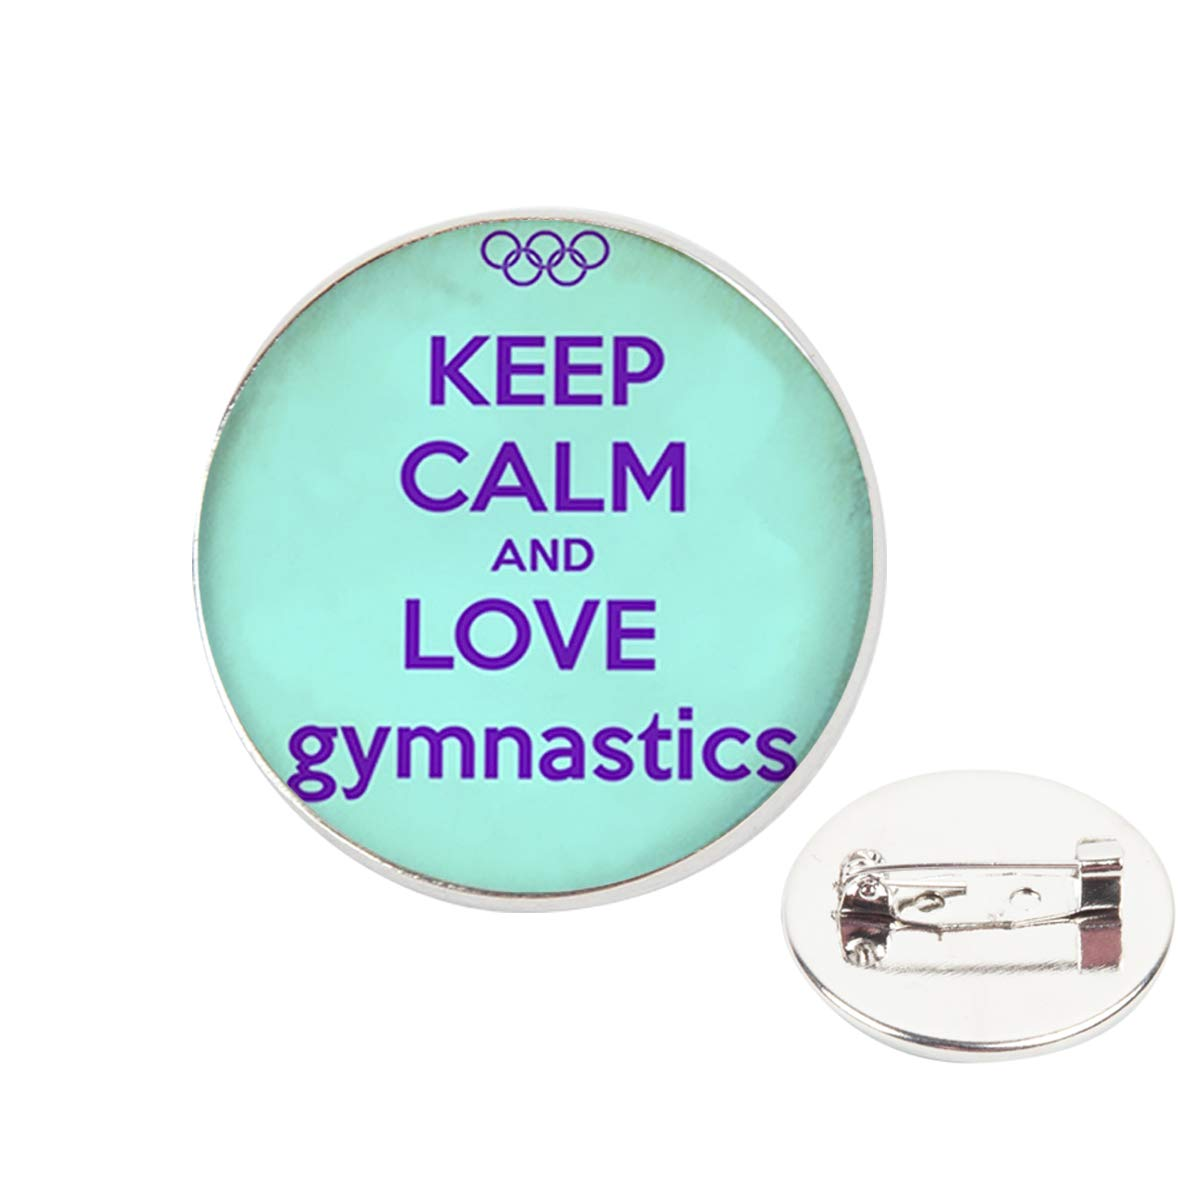 Pinback Buttons Badges Pins Keep Calm and Love Gymnastics Quote Lapel Pin Brooch Clip Trendy Accessory Jacket T-Shirt Bag Hat Shoe